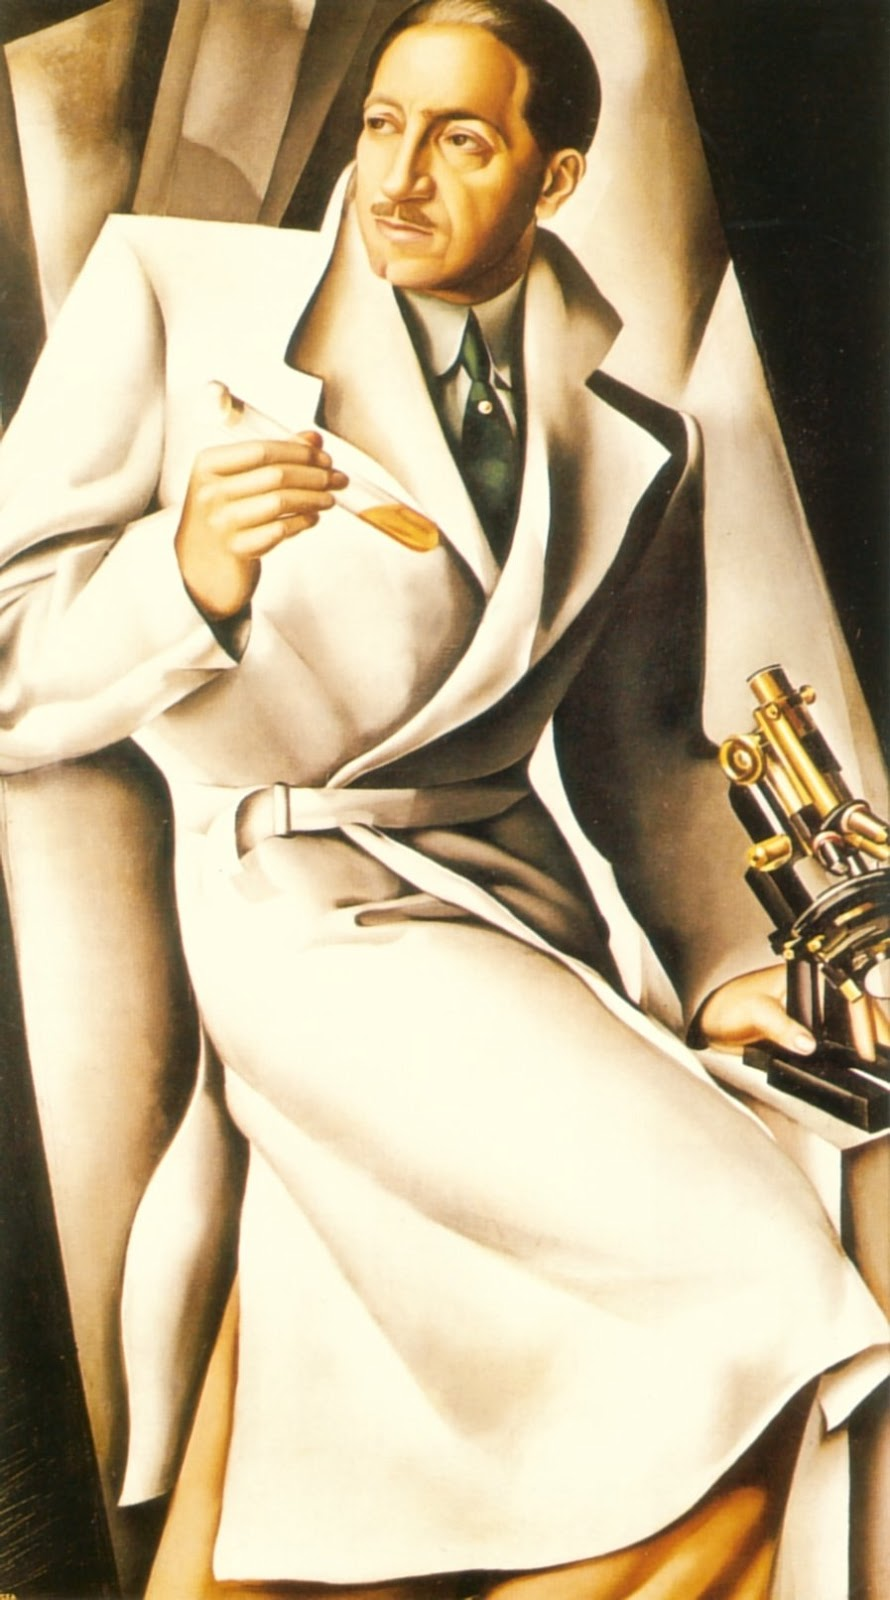 art artists tamara de lempicka part 2. Black Bedroom Furniture Sets. Home Design Ideas